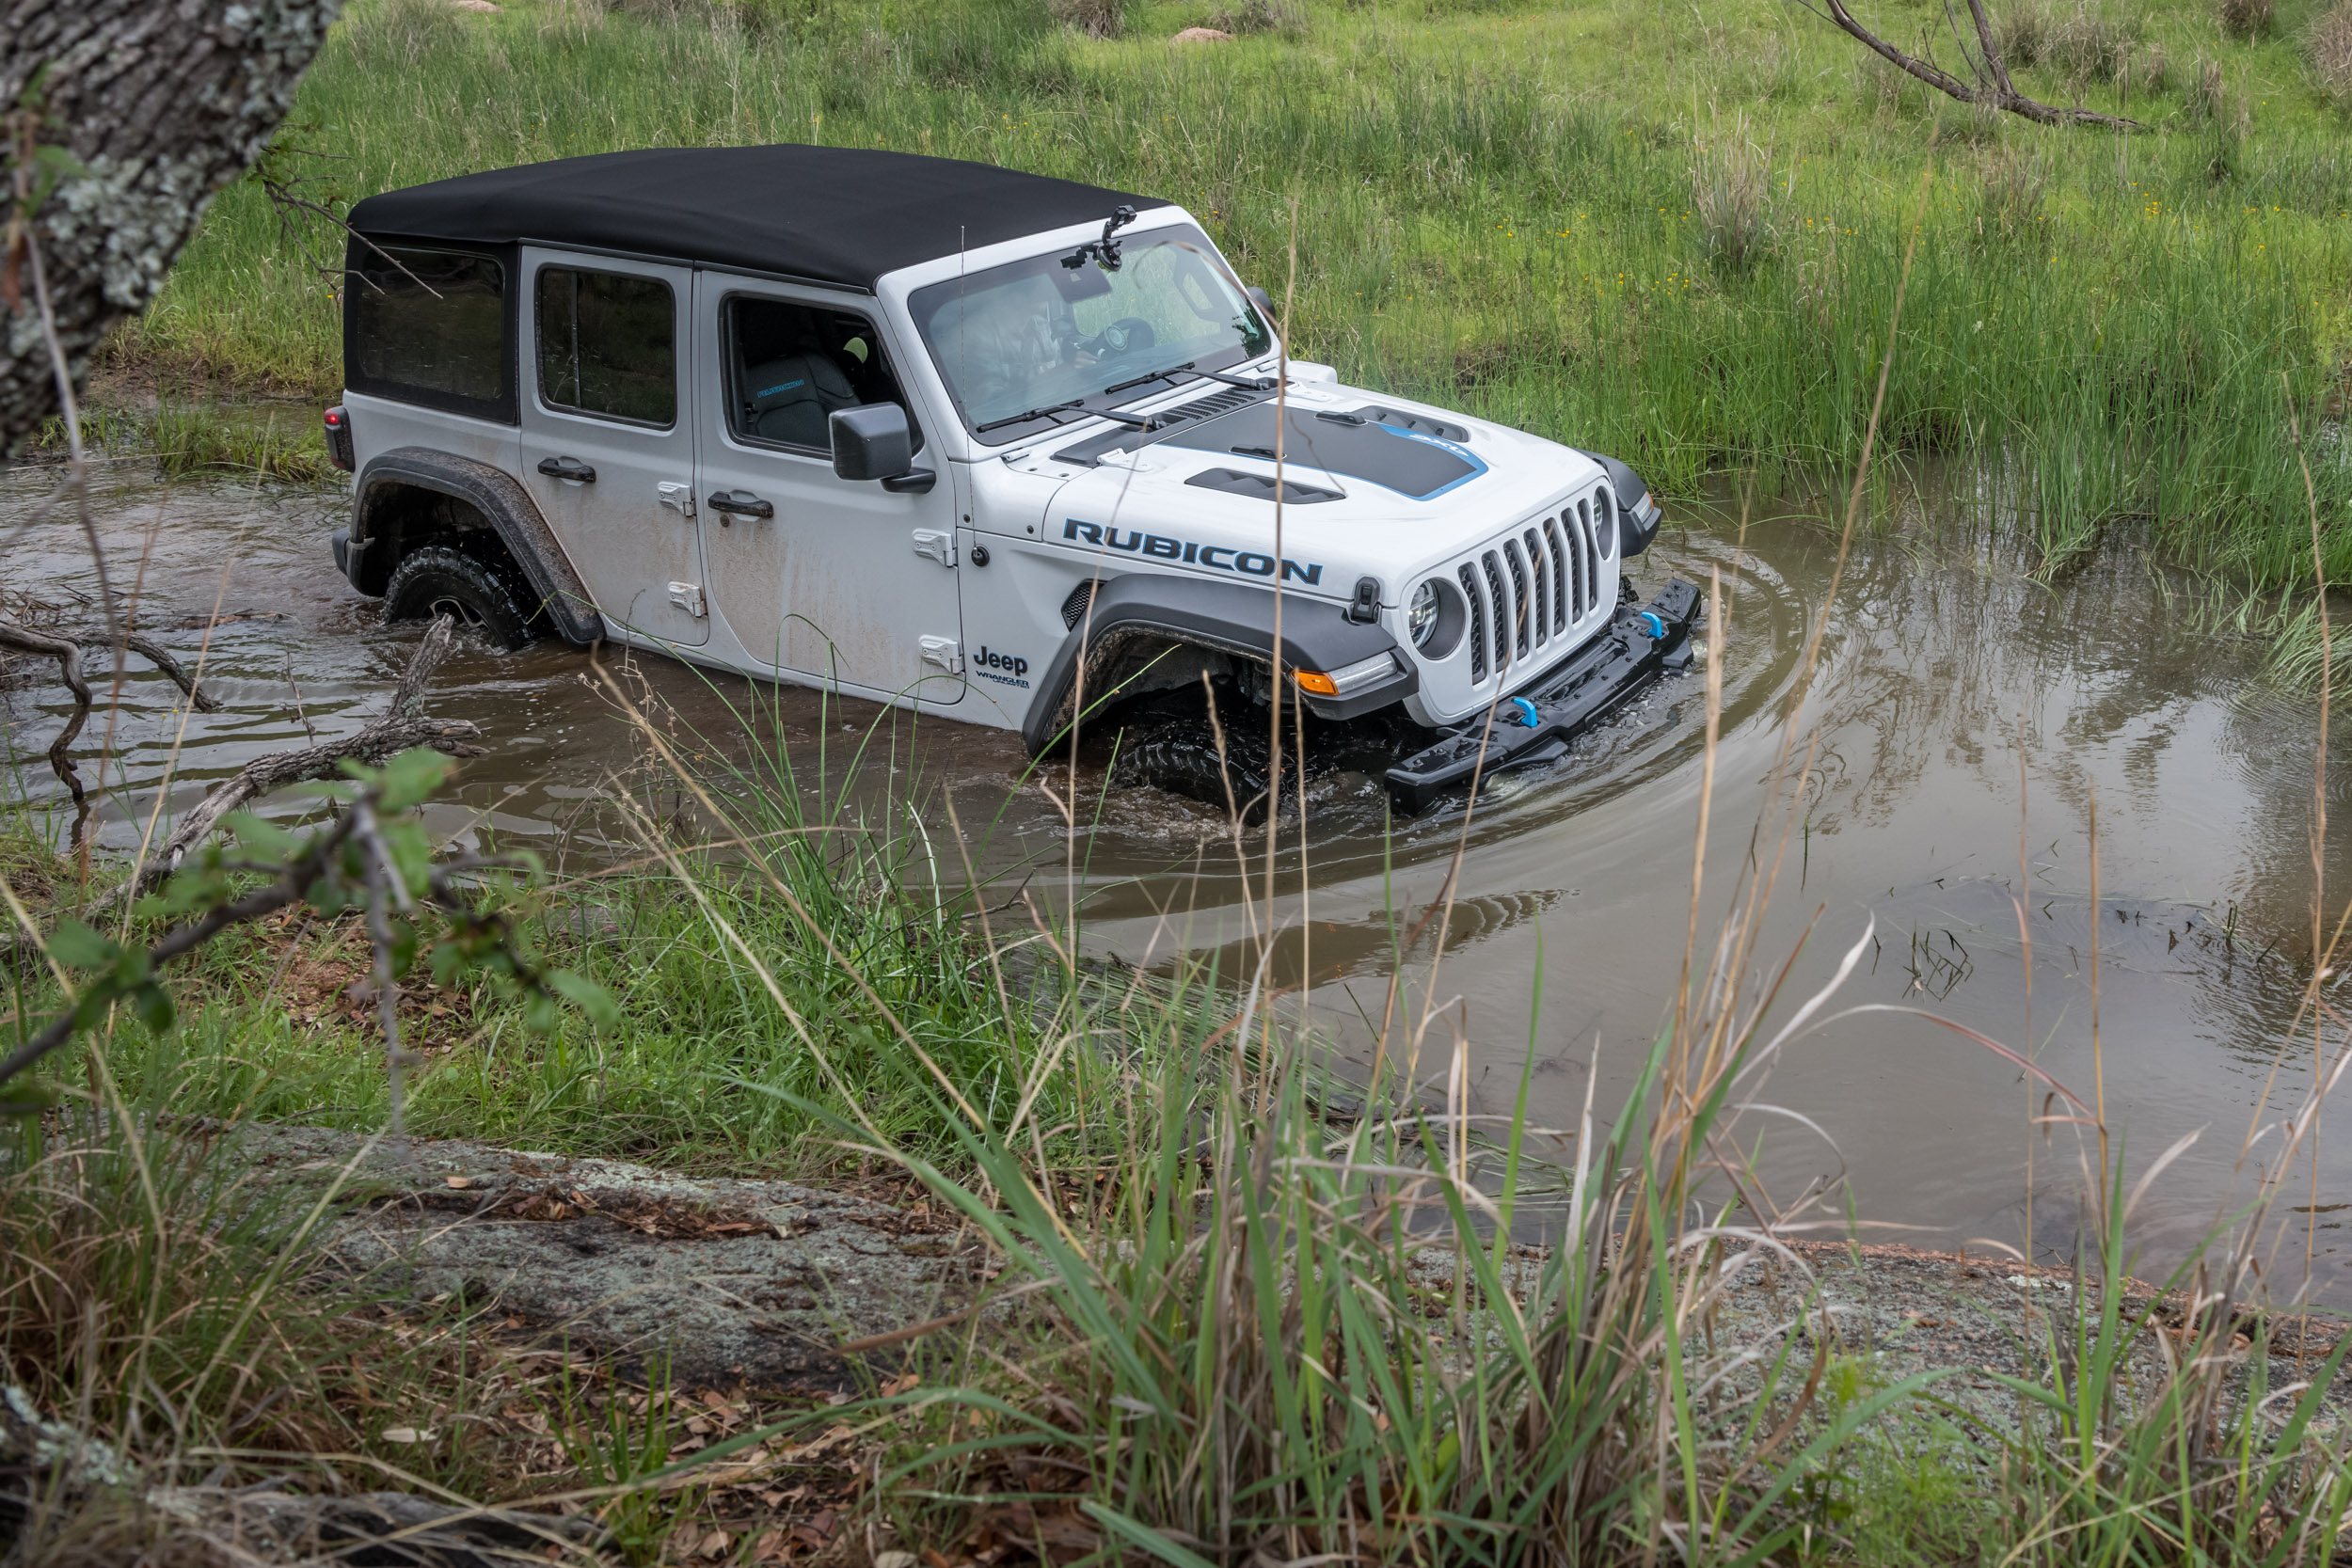 2021 Jeep Wrangler 4Xe Rubicon in water